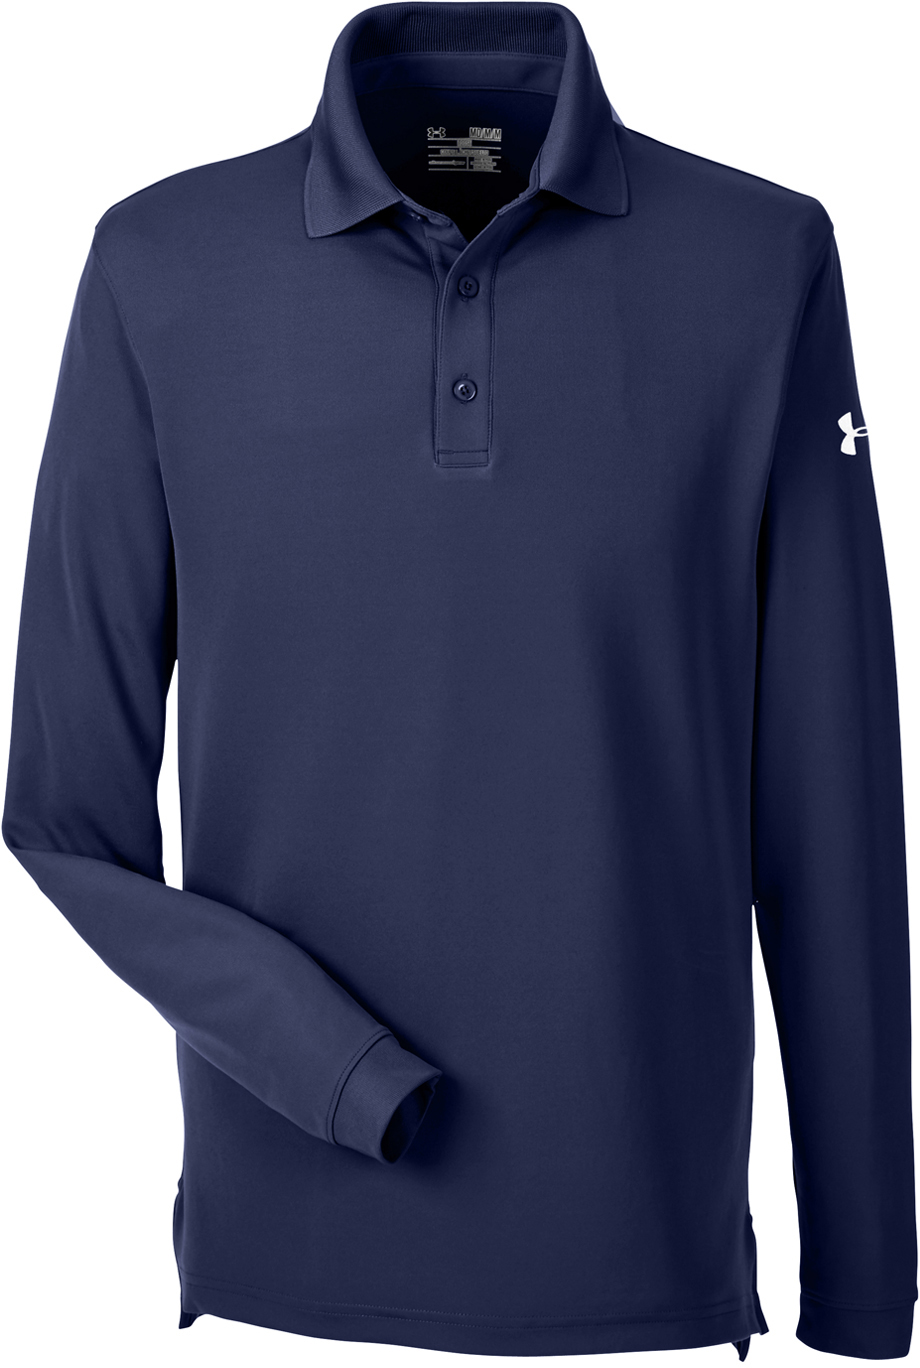 Under armour men 39 s corporate performance long sleeve polo for Under armor business shirts